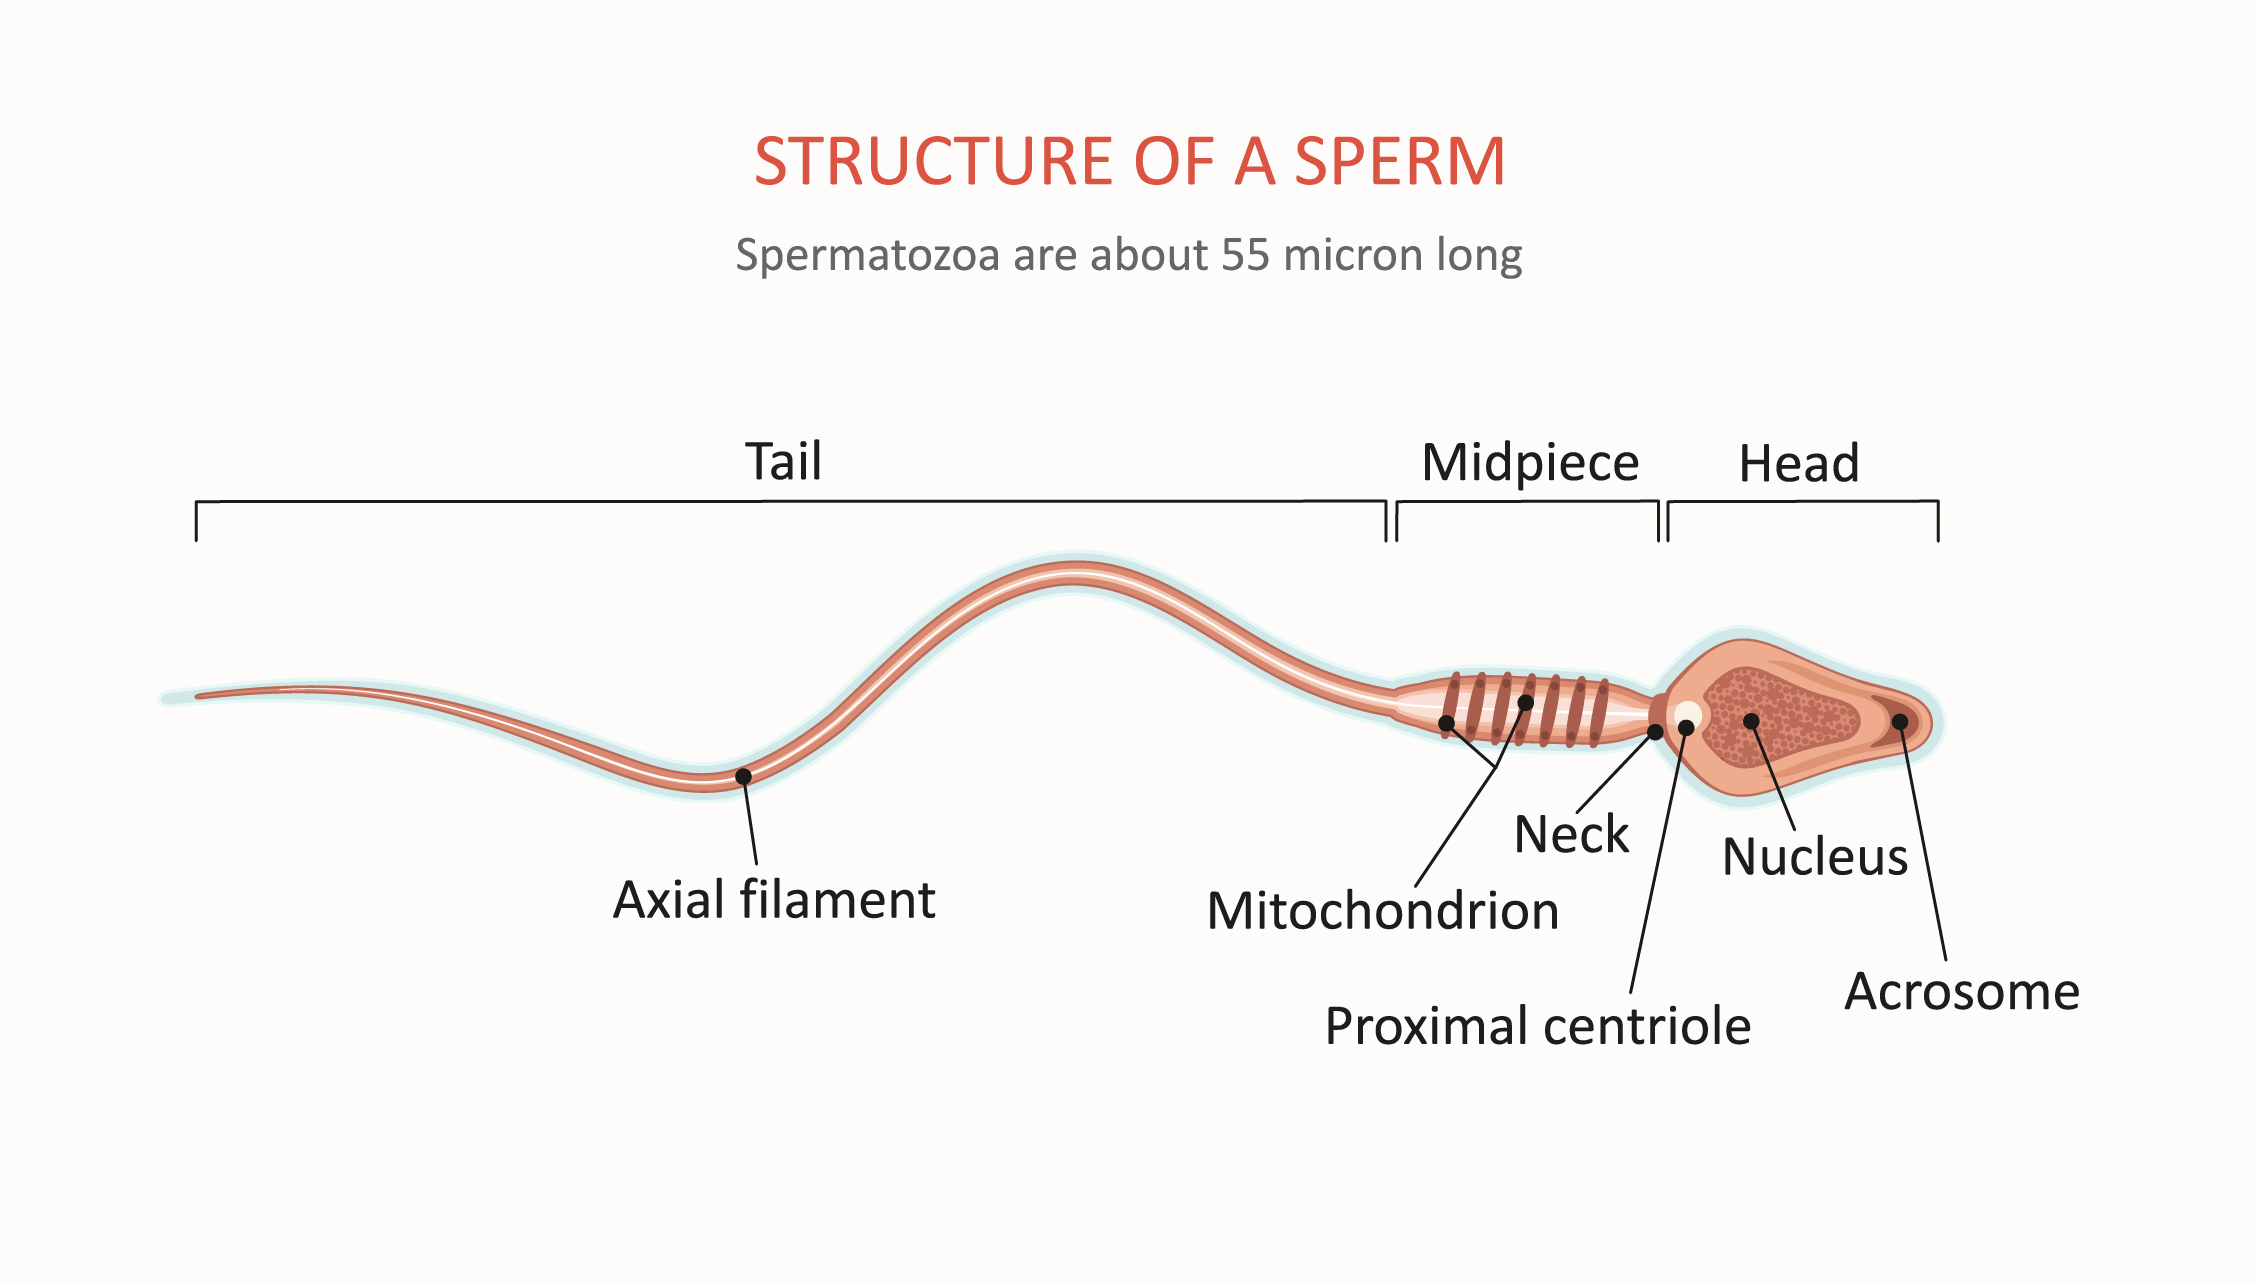 Simplistic rendering of sperm illustrates the critical location of the acrosome. Once the sperm contacts the zona pellucida, the acrosome releases enzymes hyaluronidase and acrosin that break down hyaluronic acid intracellular structures, allowing penetration of the head of the sperm to the cytoplasm and eventual bonding with the nucleus. PPCM triggers the premature loss of the acrosomal coating, thus rendering sperm infertile. (Source: online.psu.edu - Penn State)